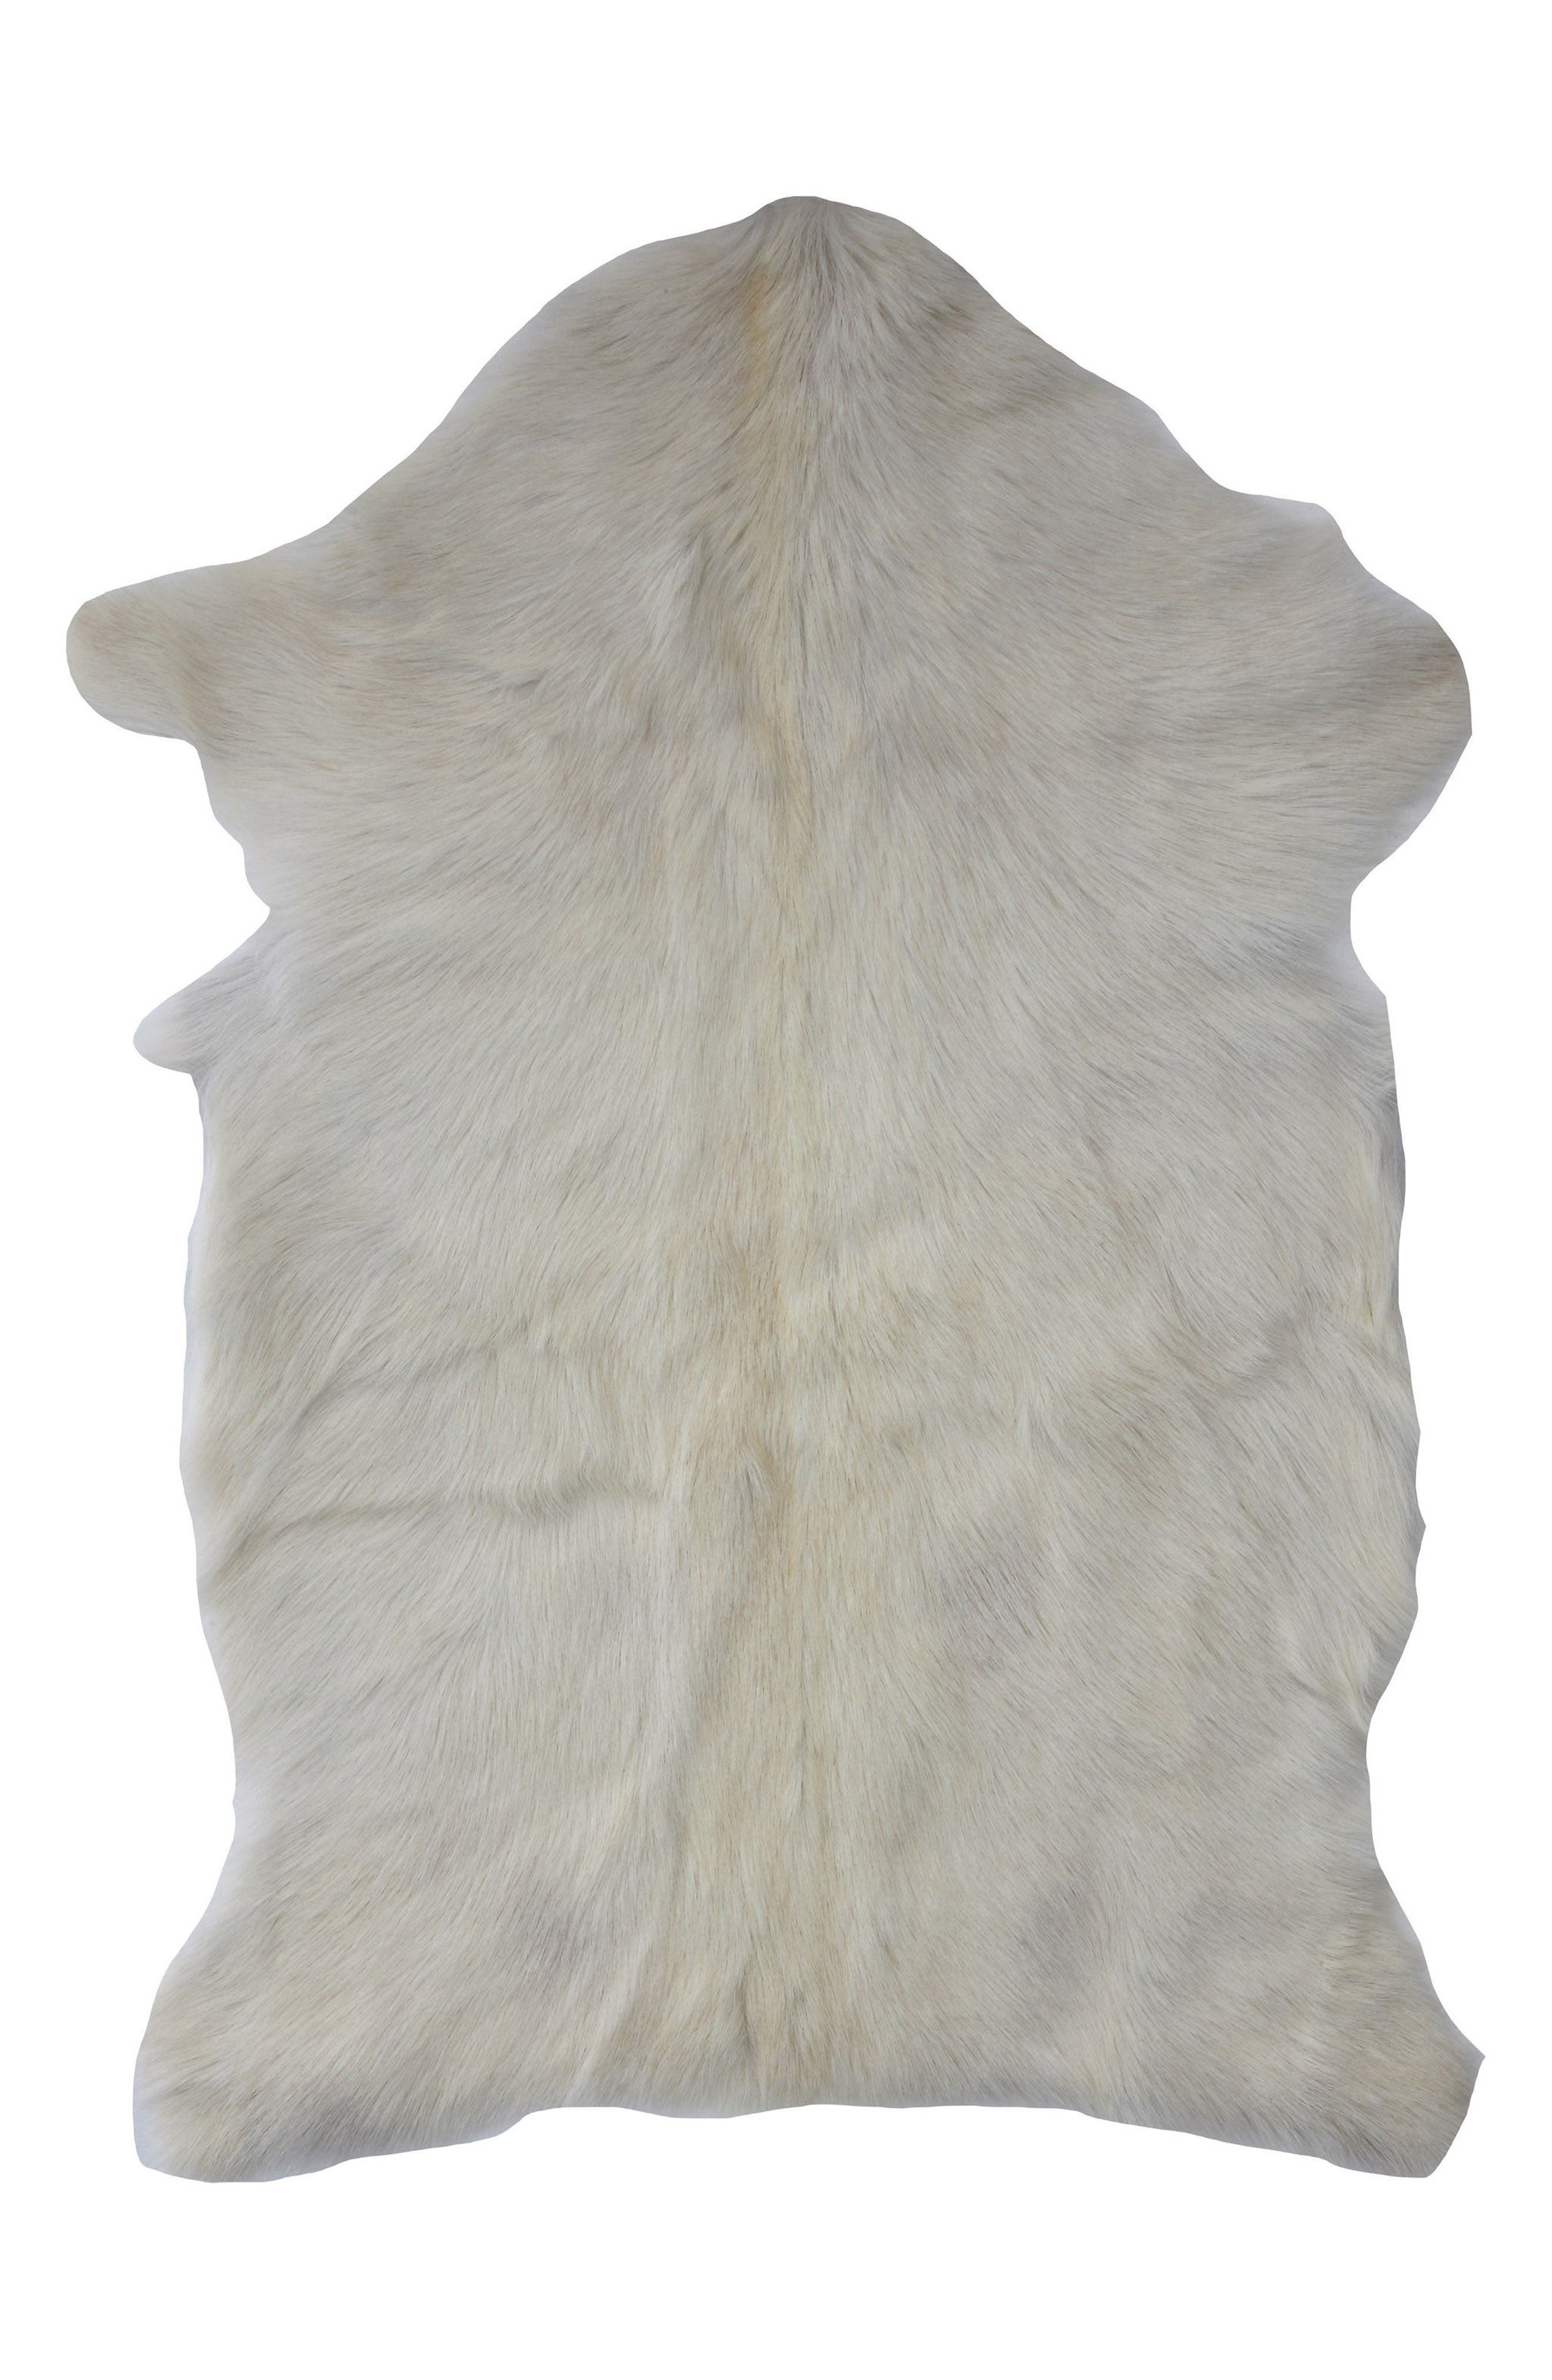 Alternate Image 1 Selected - Creative Co-Op Genuine Goat Hair Rug